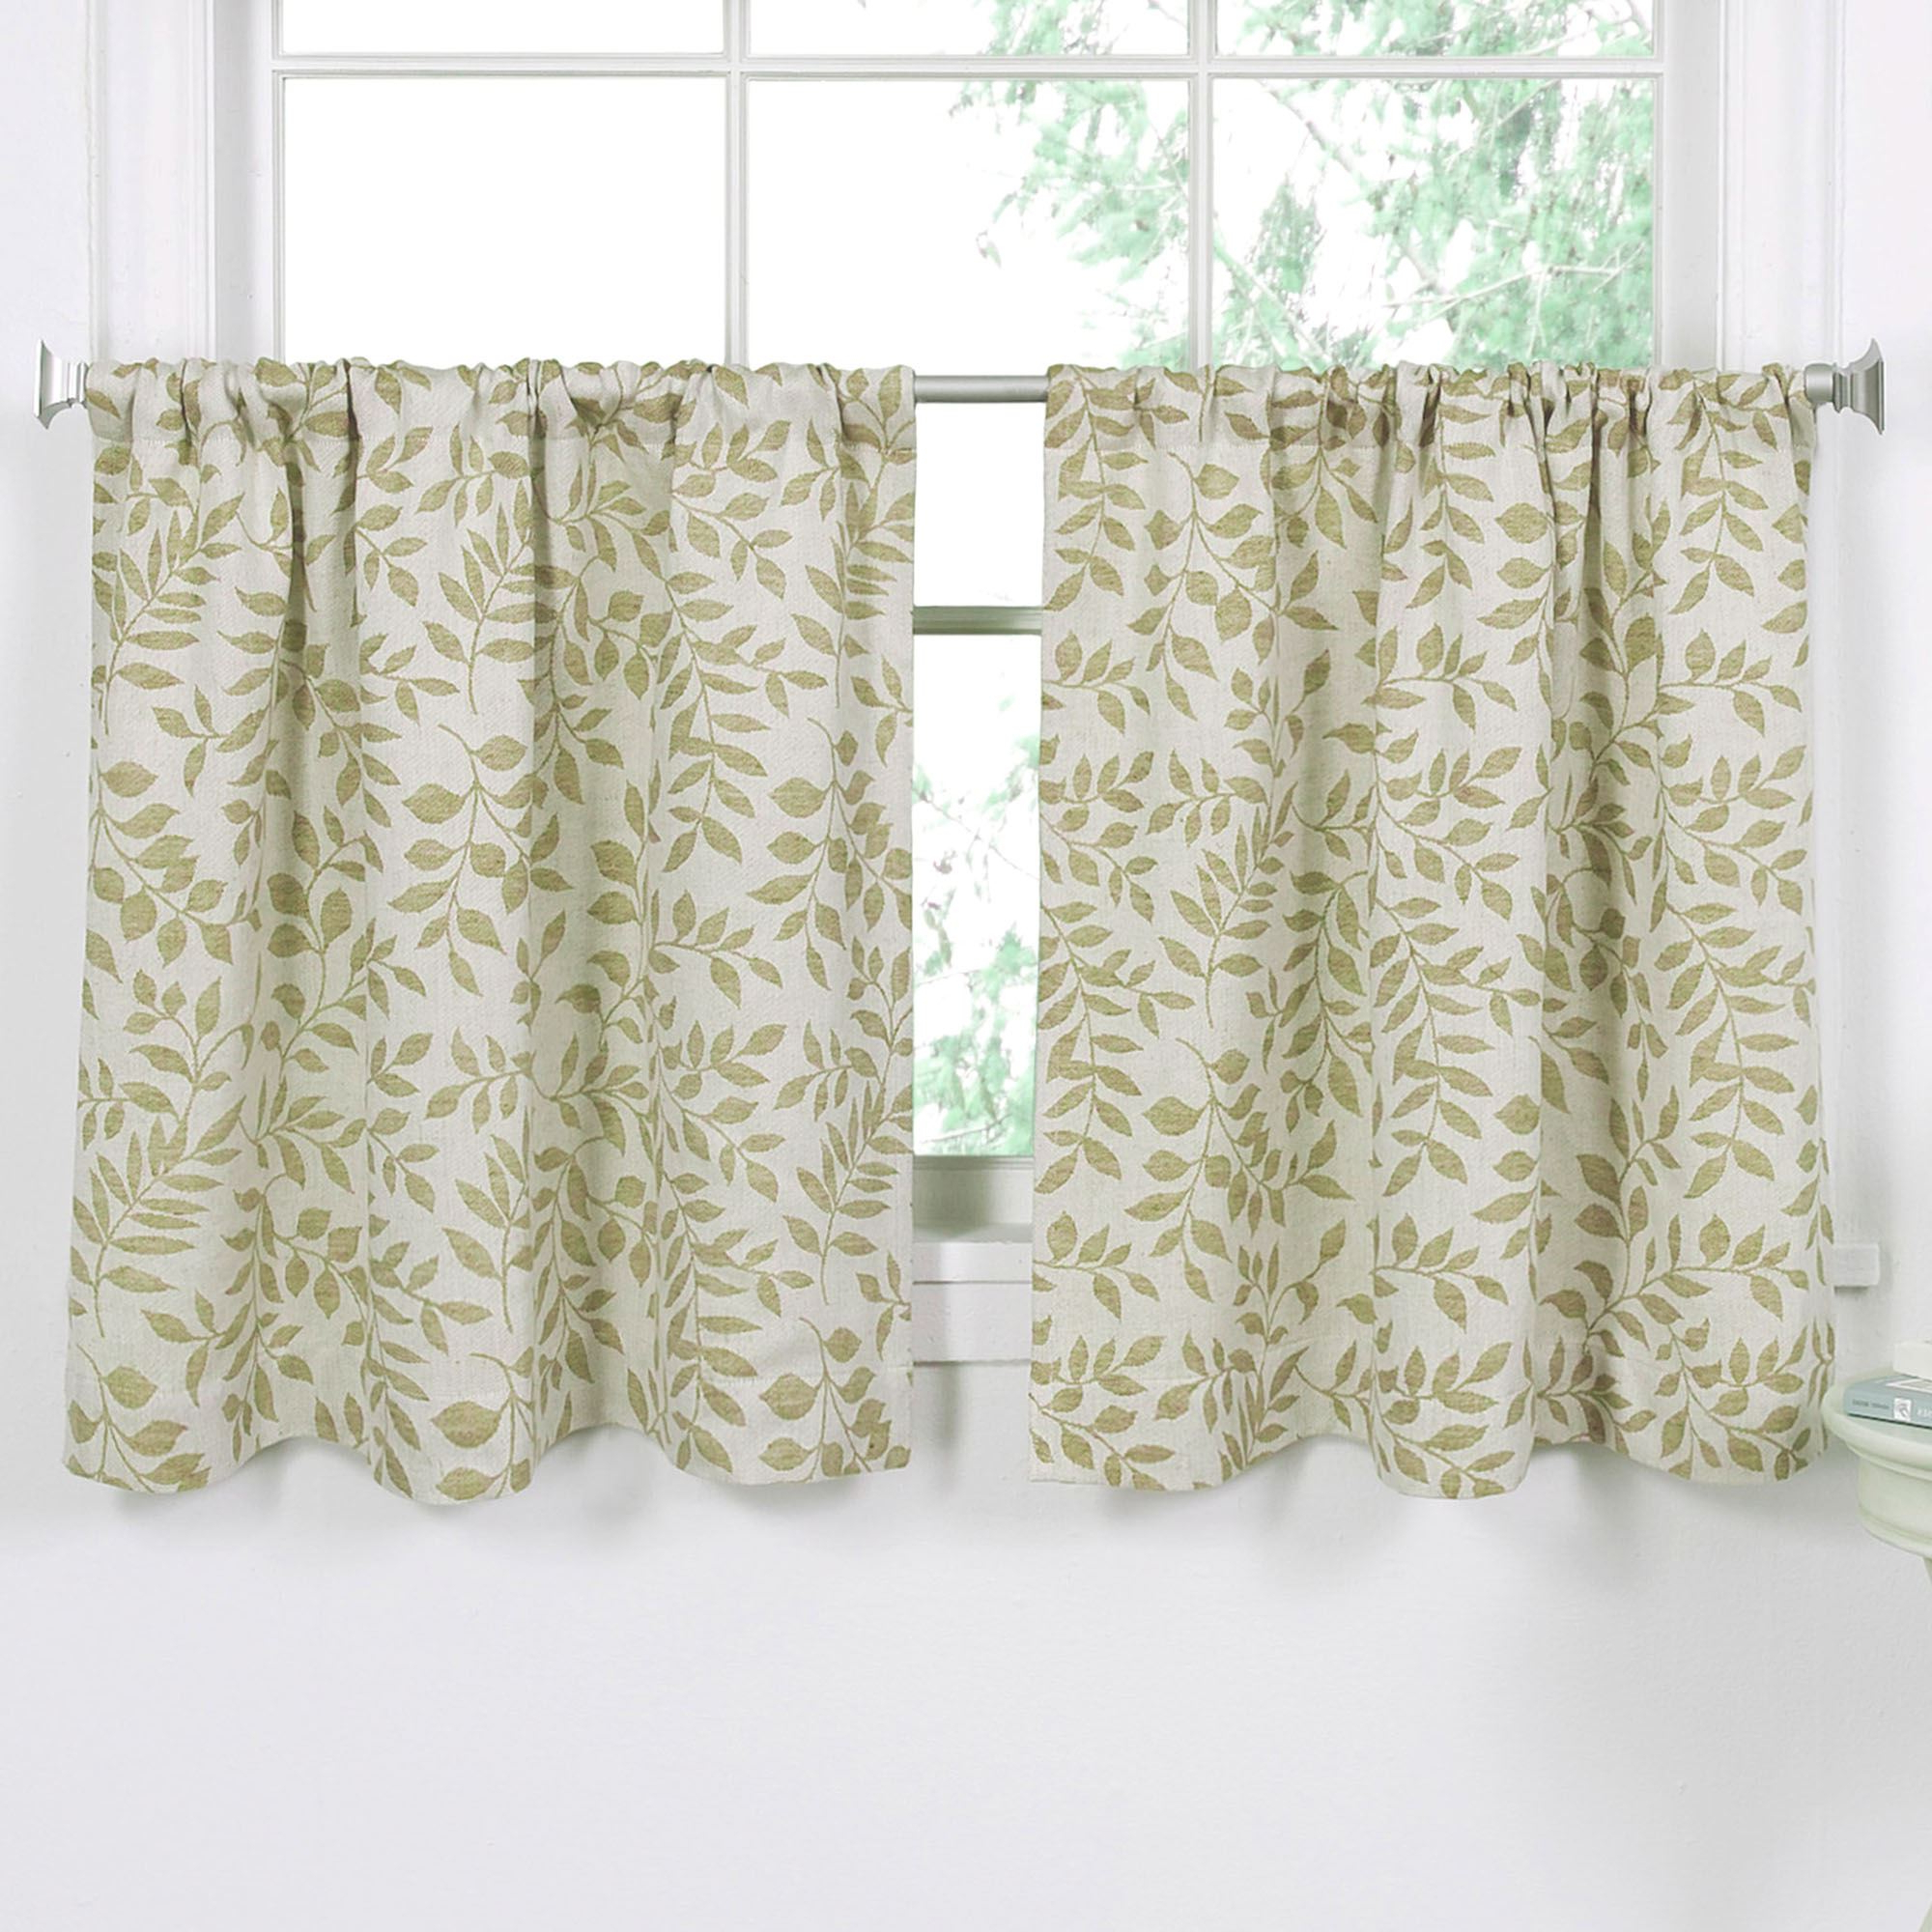 Widely Used Tranquility Curtain Tier Pairs Regarding Tranquil Leaf Design Tier Window Treatment (View 14 of 20)